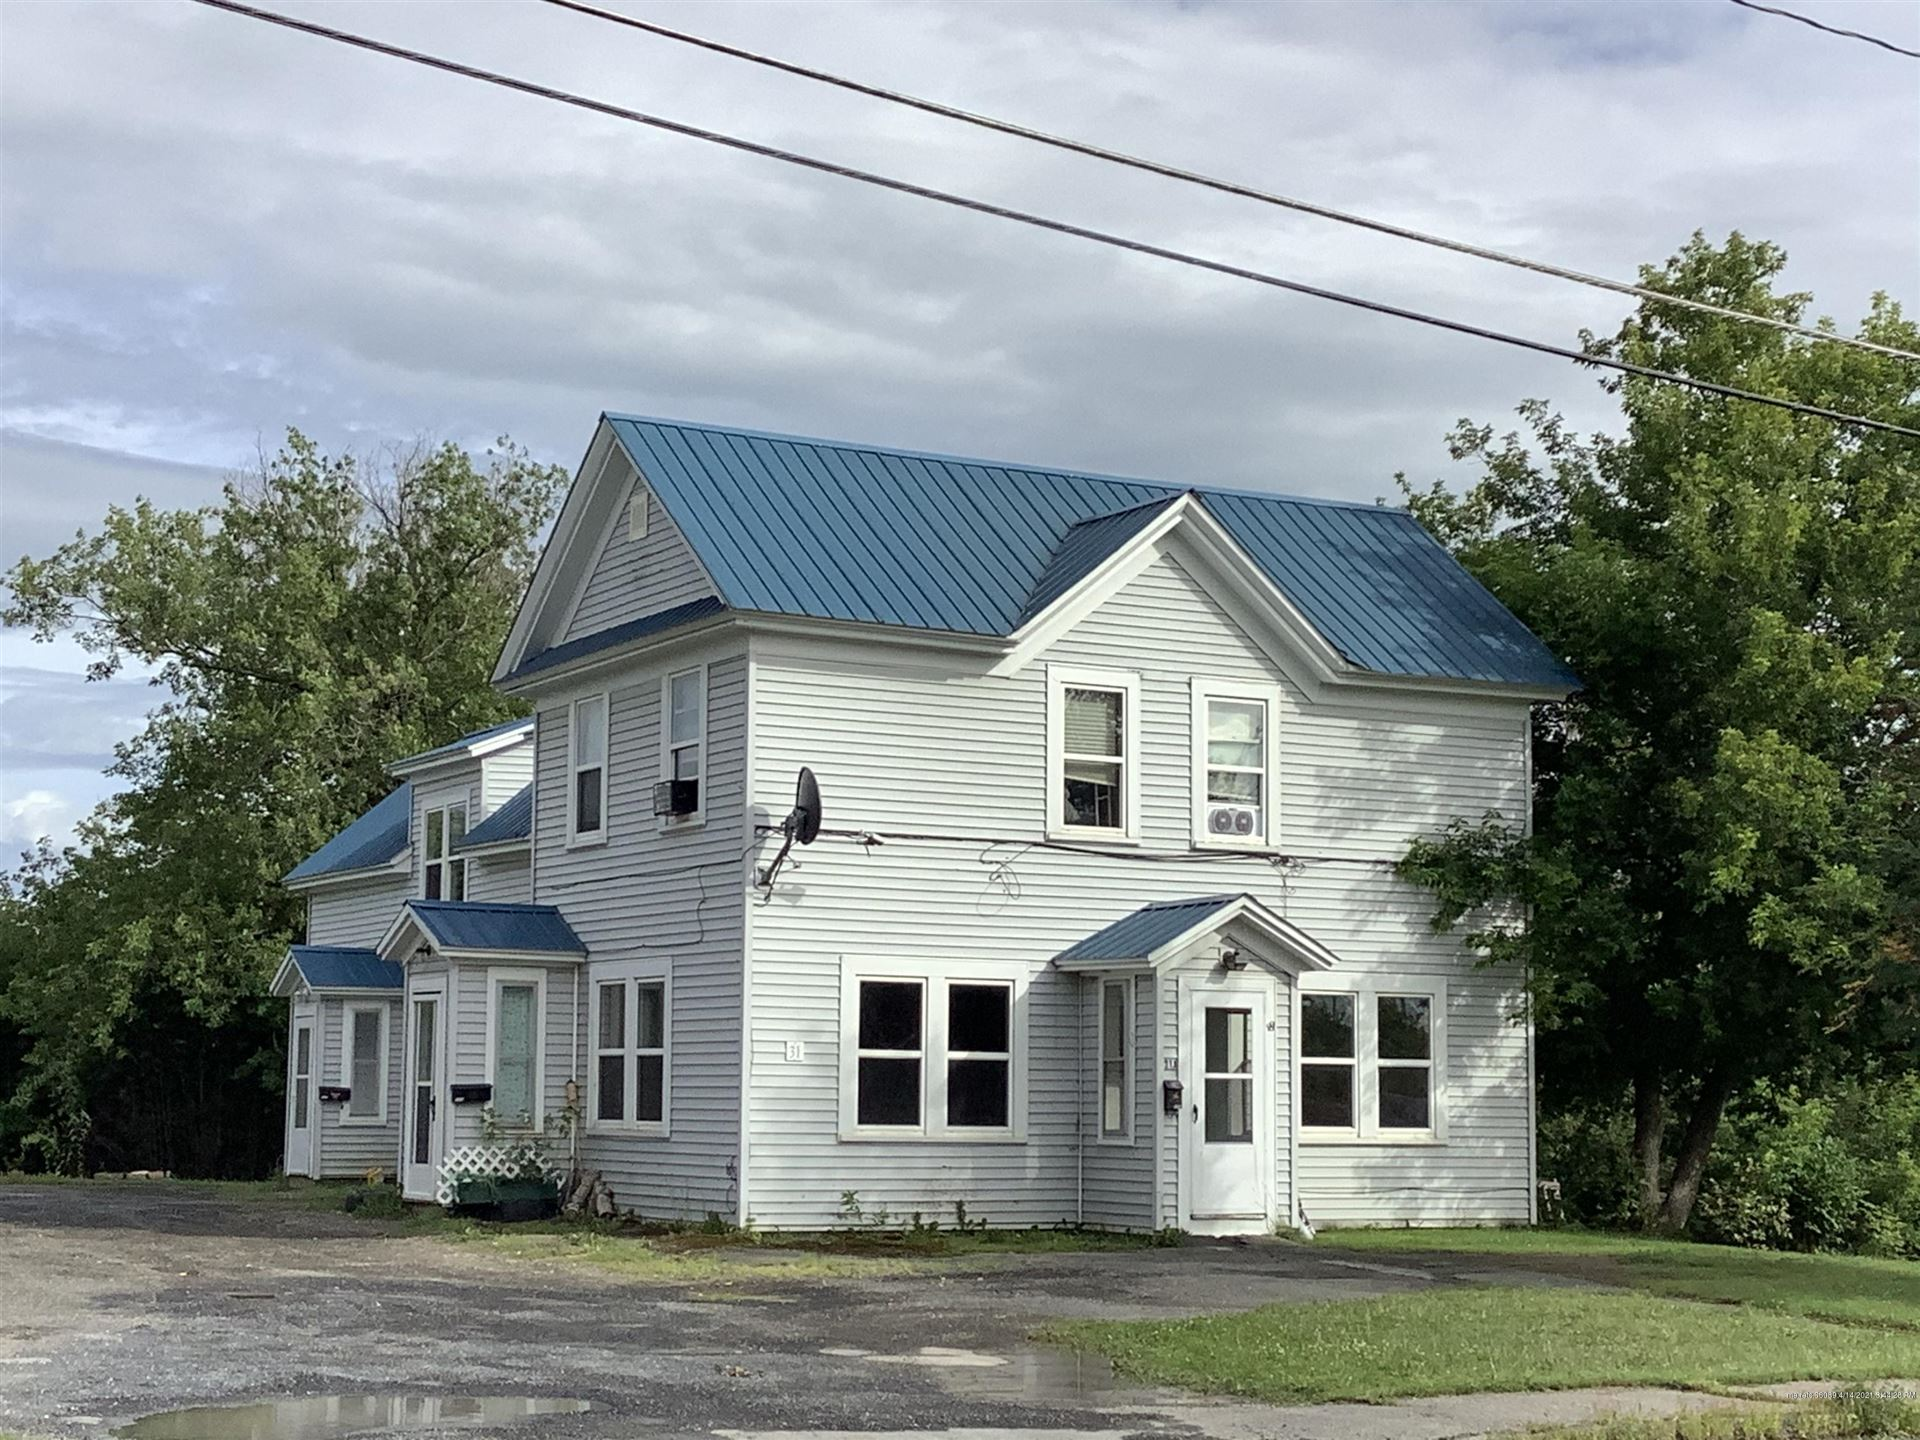 Photo of 31 Forest Avenue, Fort Fairfield, ME 04742 (MLS # 1487698)